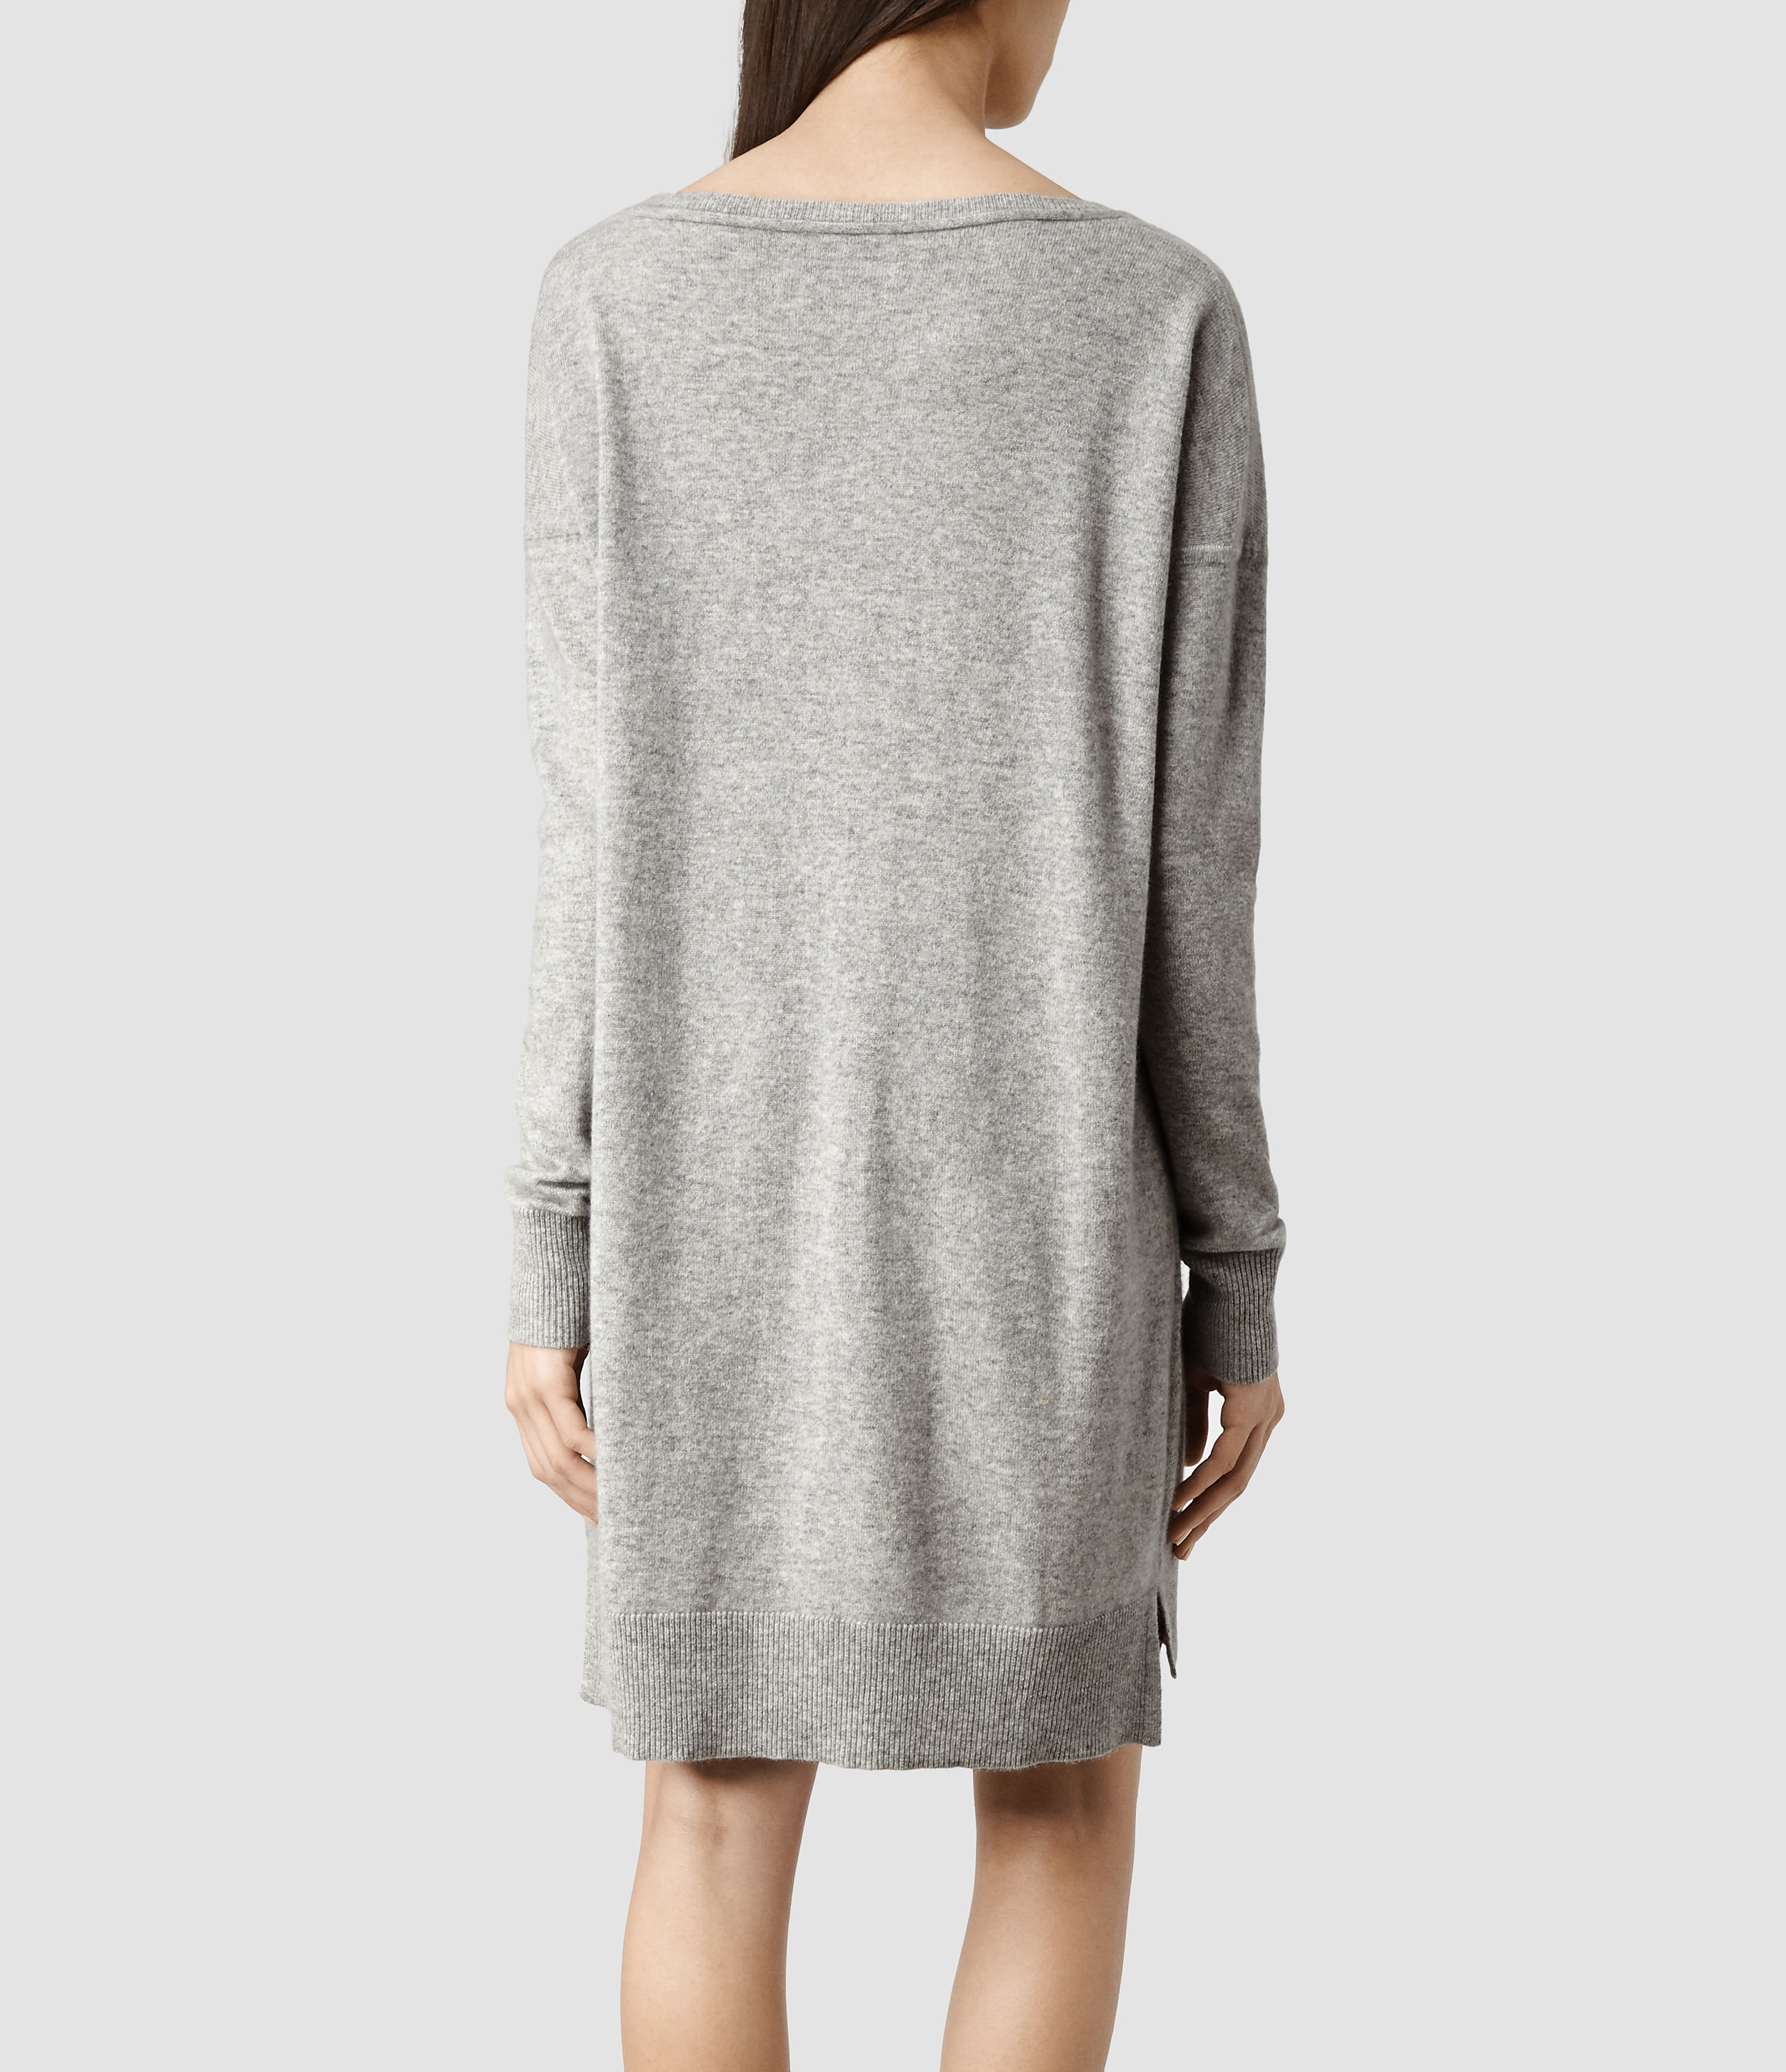 Allsaints Char Cashmere Sweater Dress In Gray Lyst